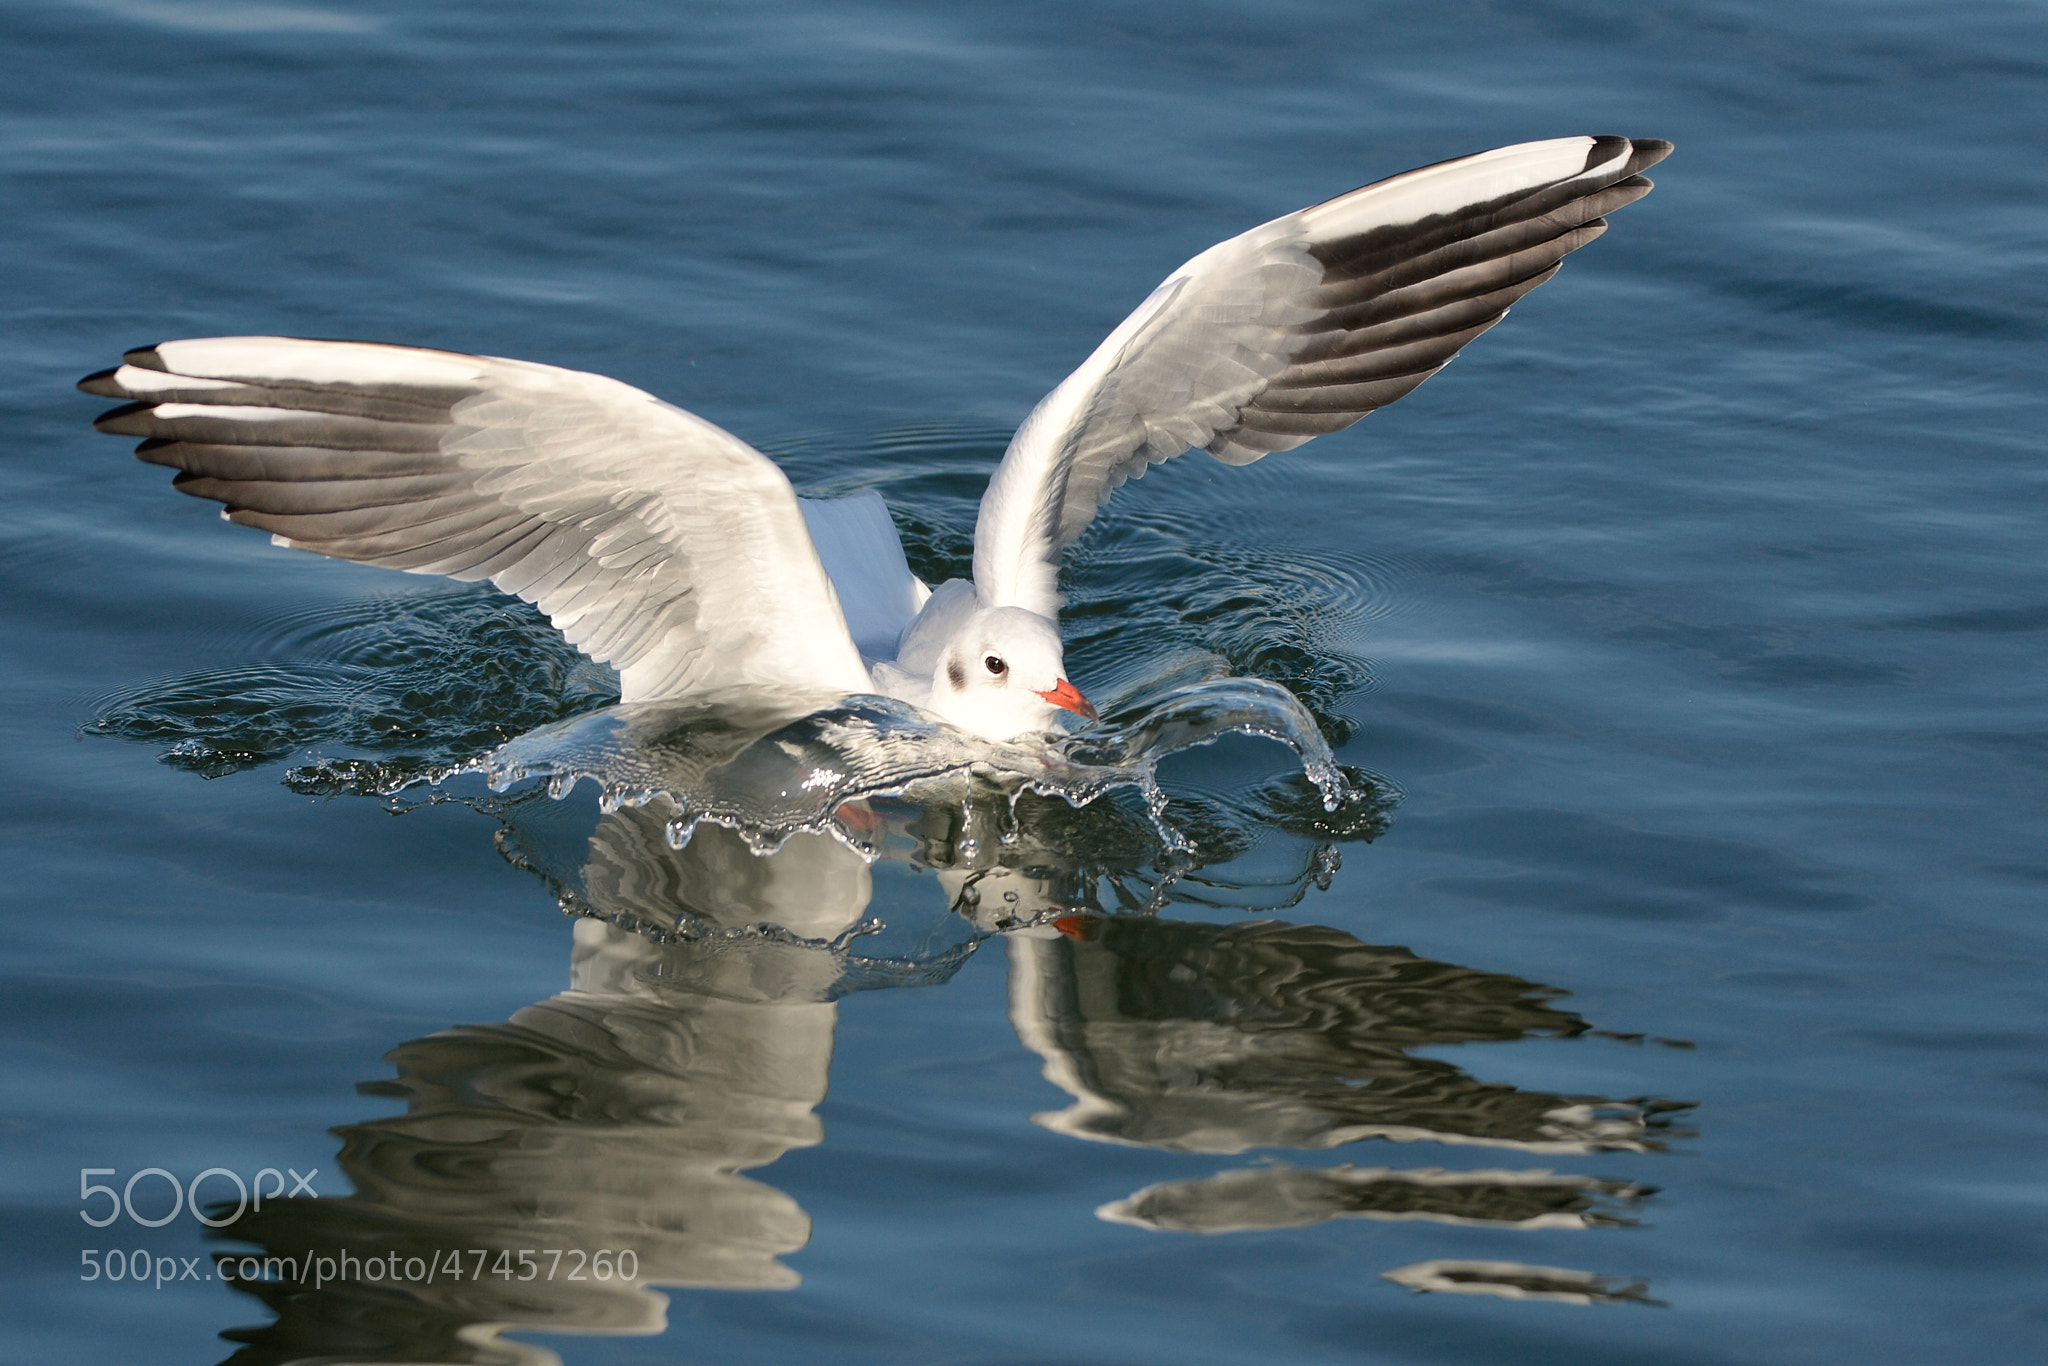 Photograph Landende Möwe | Landing seagull by Franz Engels on 500px